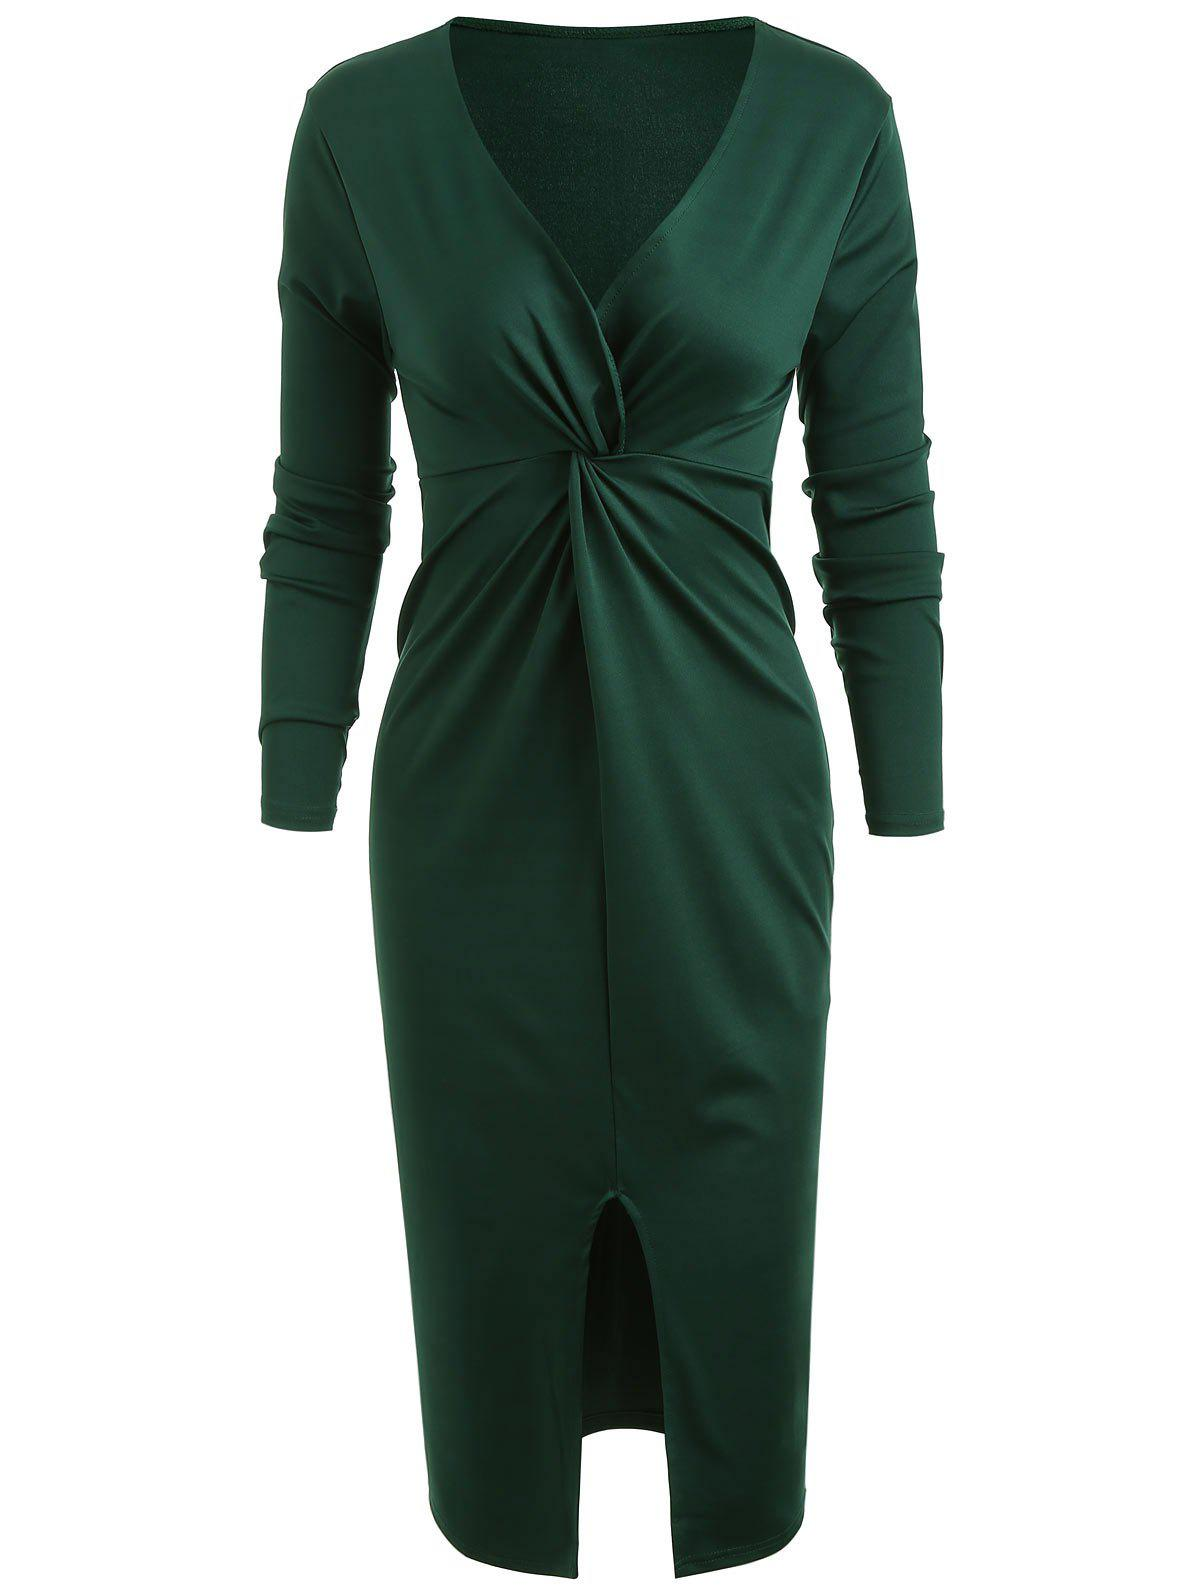 Shop Front Knot Plunging Neckline Bodycon Dress